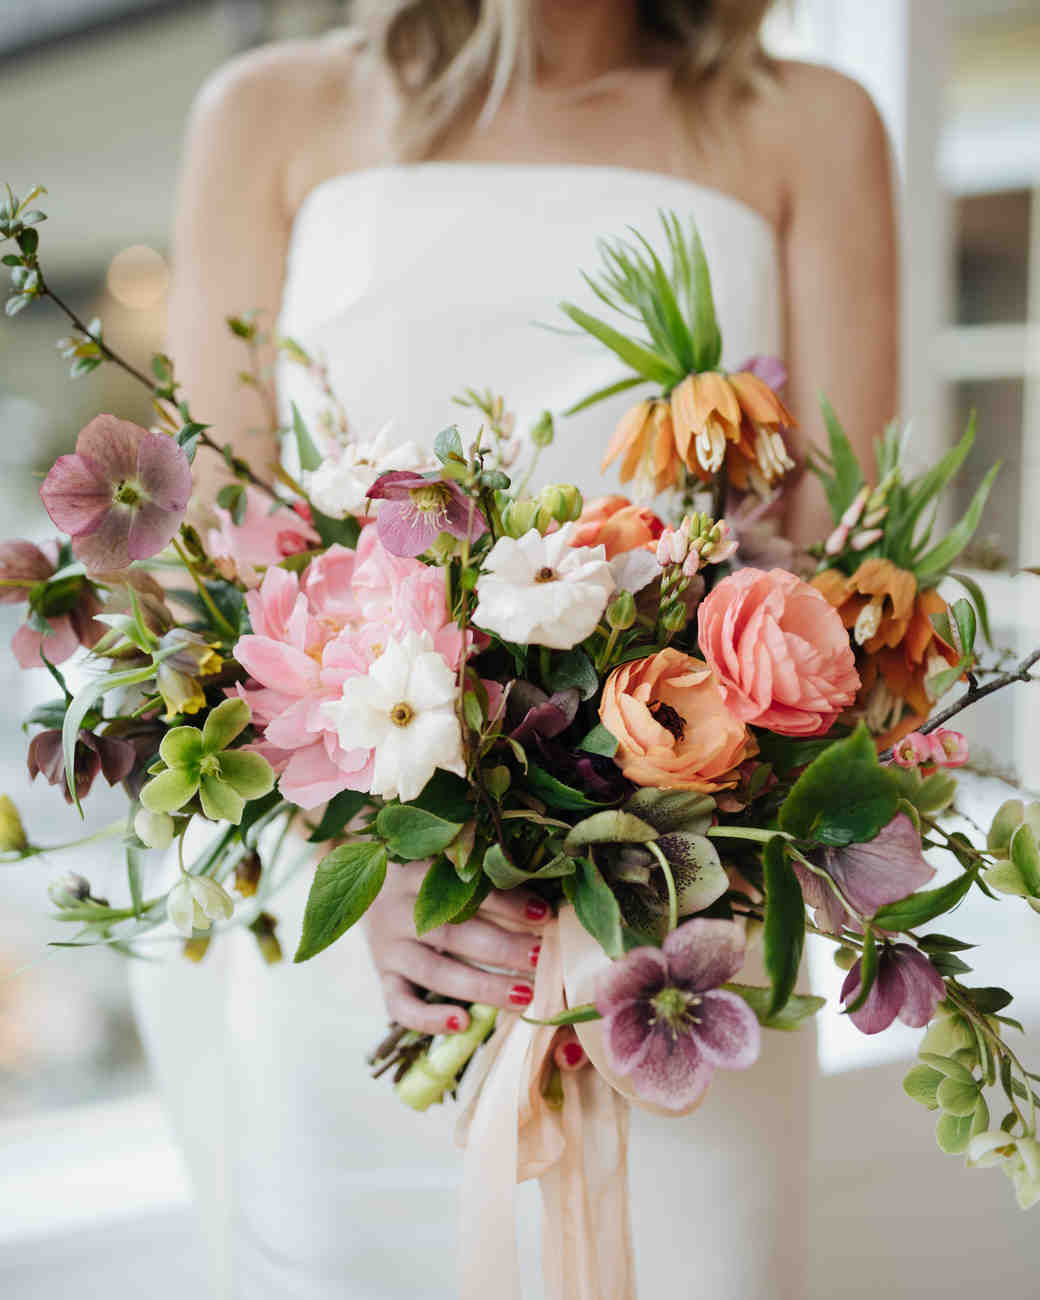 Ideas For Wedding Flowers: 52 Ideas For Your Spring Wedding Bouquet